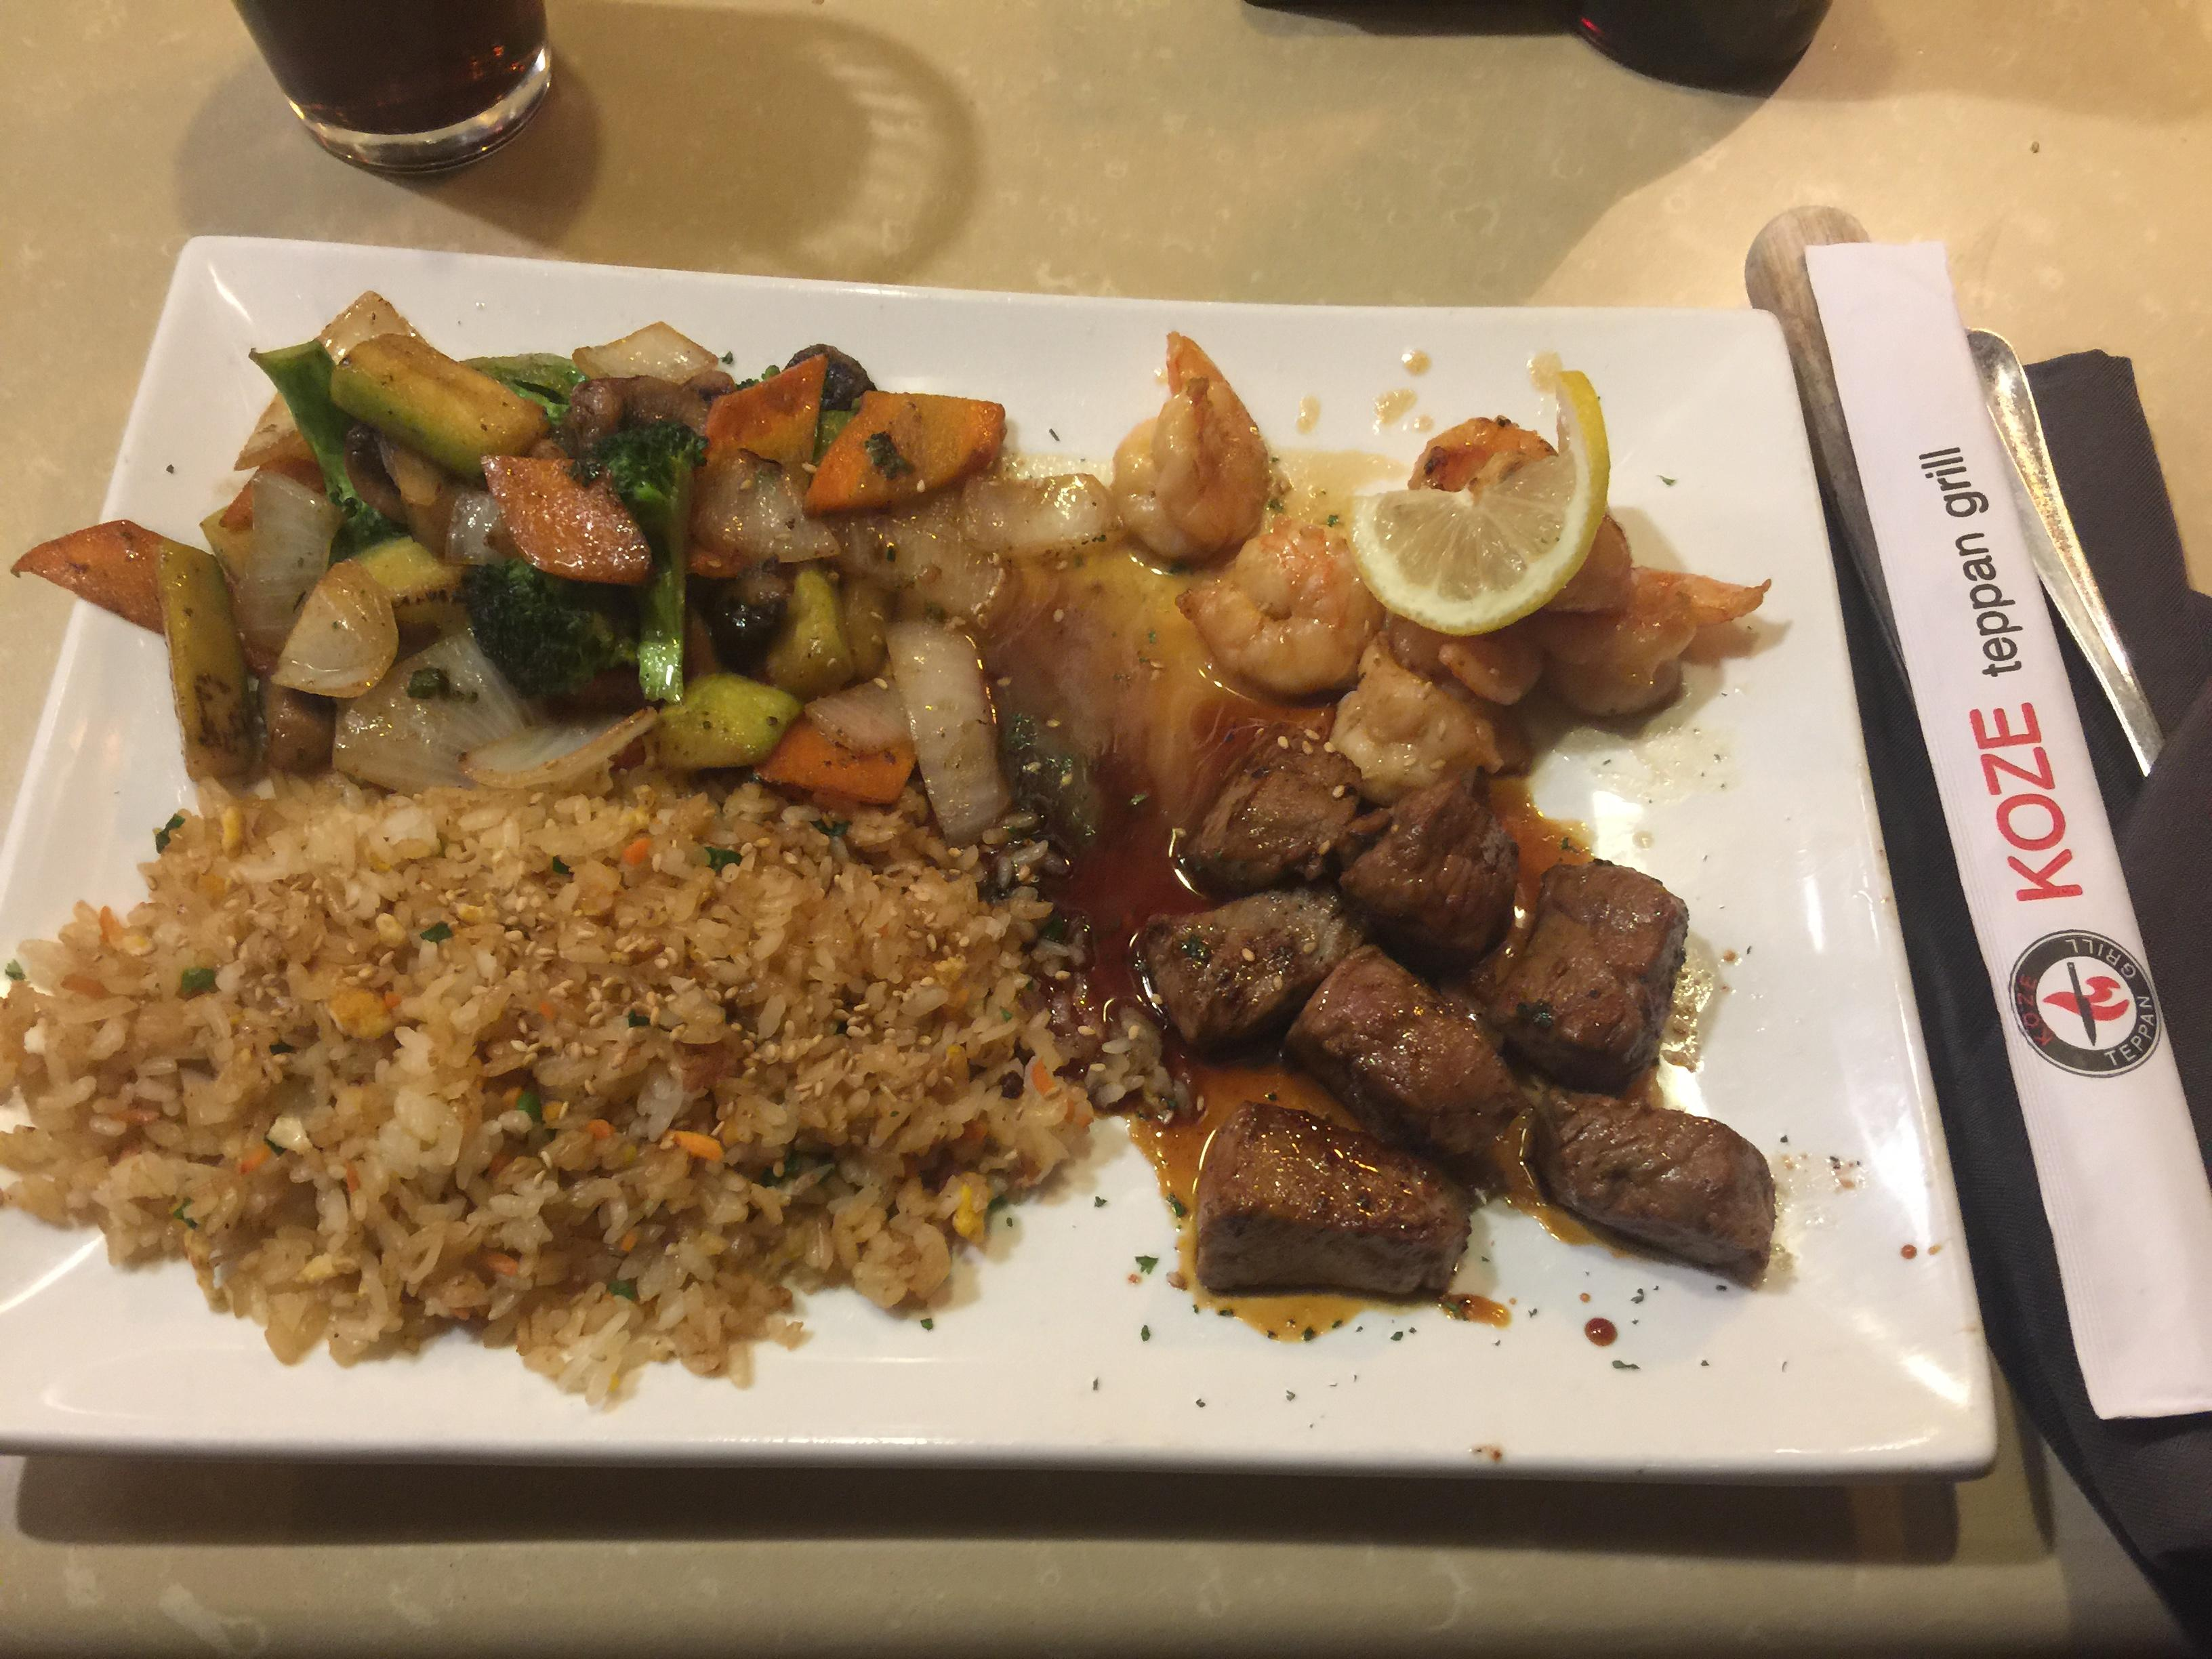 Steak and shrimp at Koze Teppan Grill #food El Paso